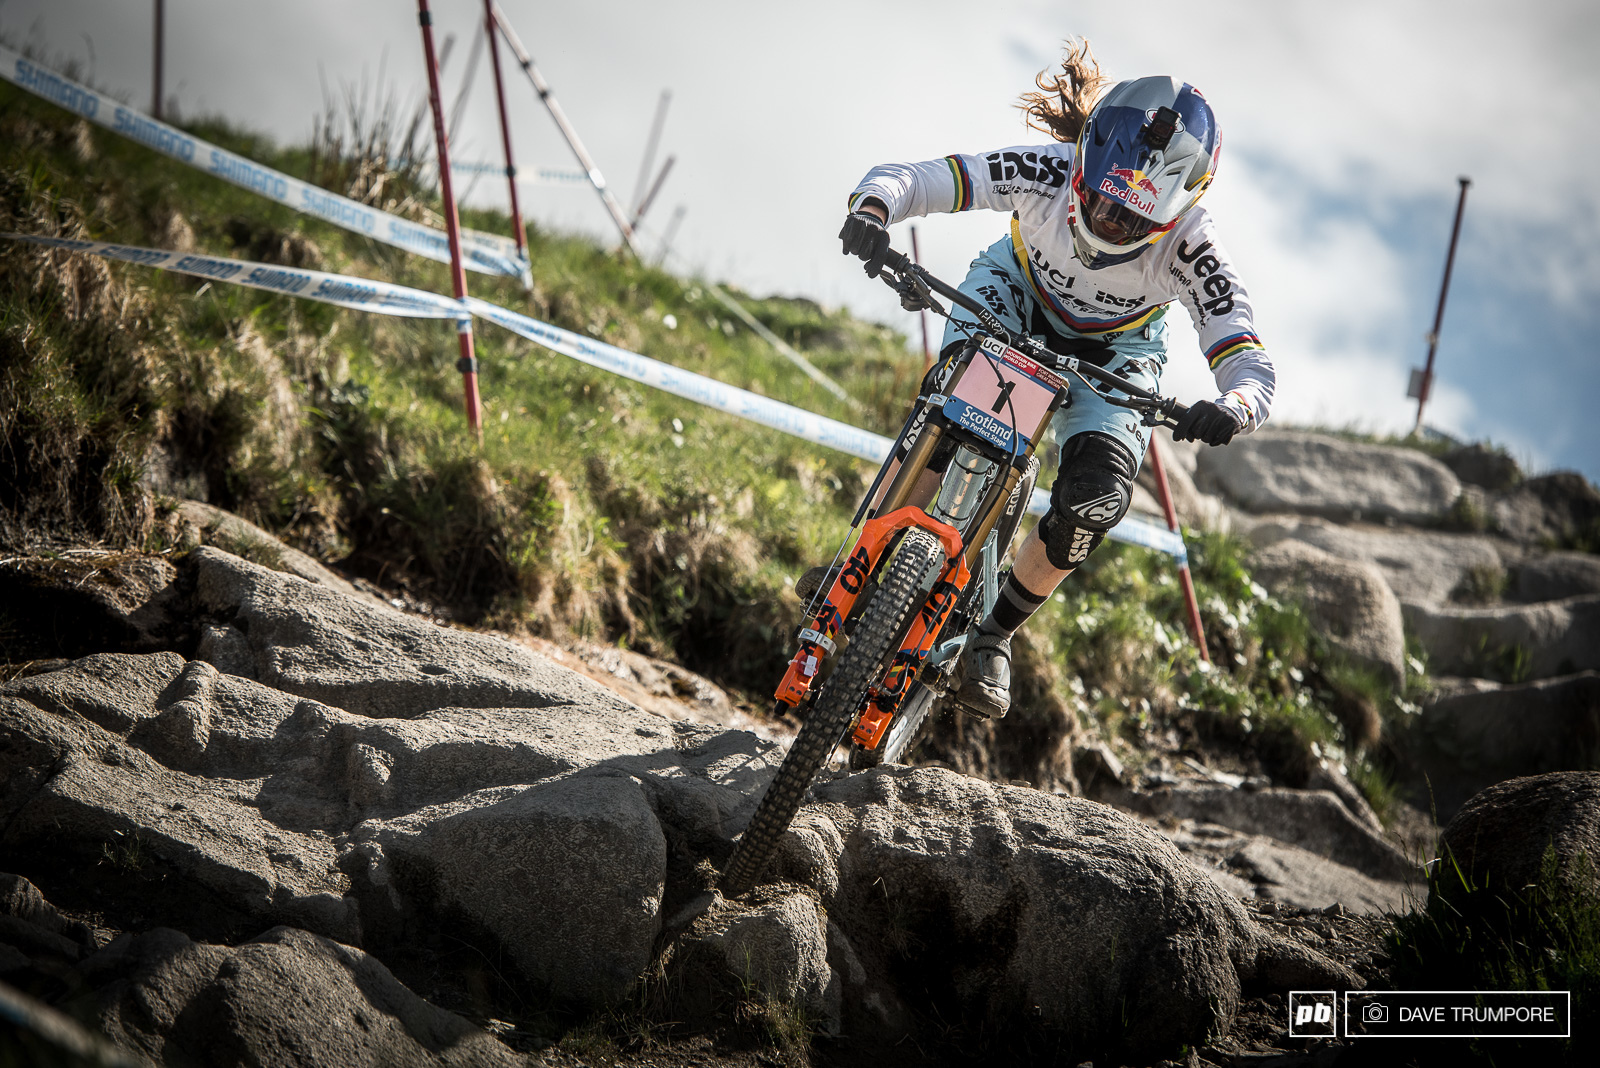 Fastest in timed training Rachel Atherton is right where she wants to be after the first day of practice.